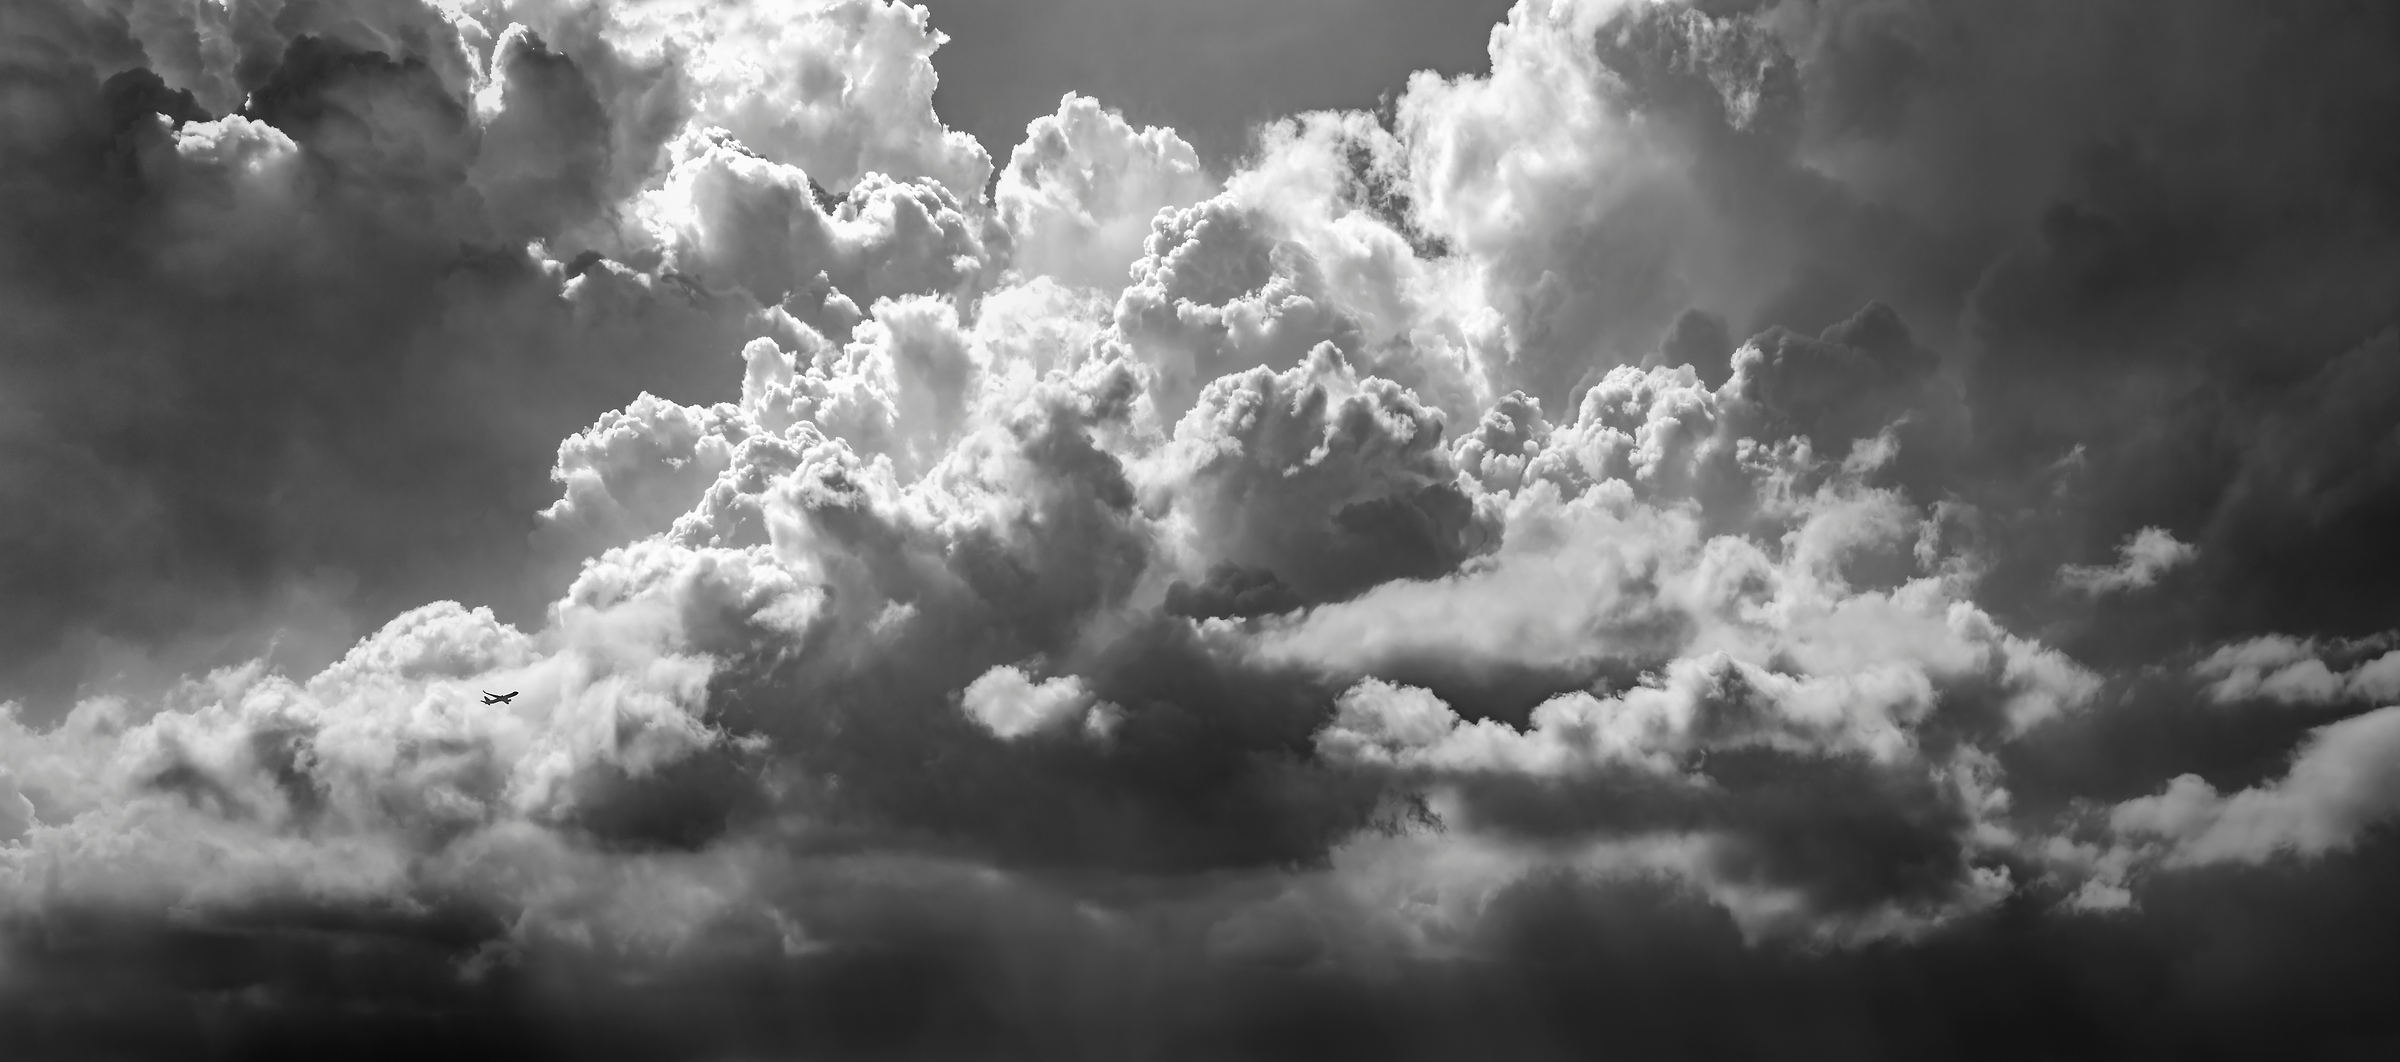 452 megapixels! A very high resolution, large-format, black & white VAST photo print of clouds; photograph created by Dan Piech in New York City